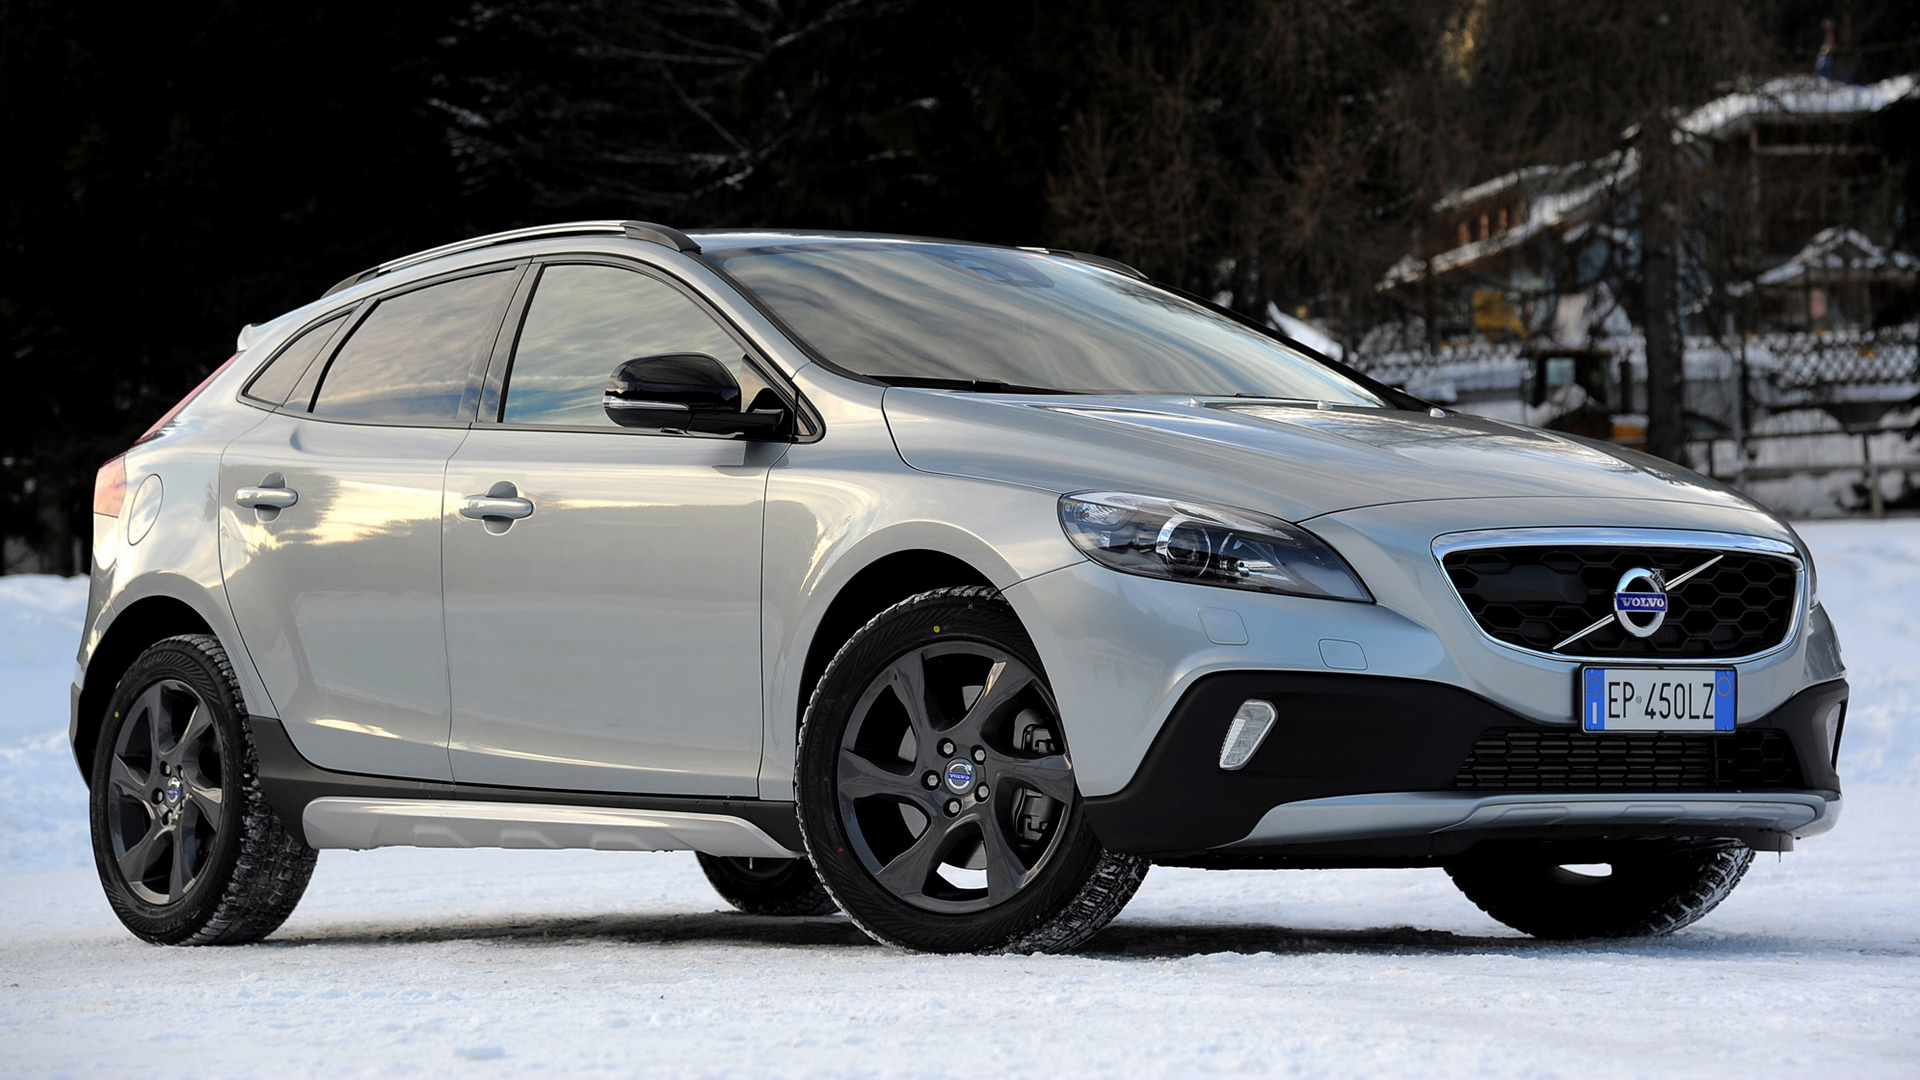 volvo v40 cross country 2012 wallpapers and hd images. Black Bedroom Furniture Sets. Home Design Ideas